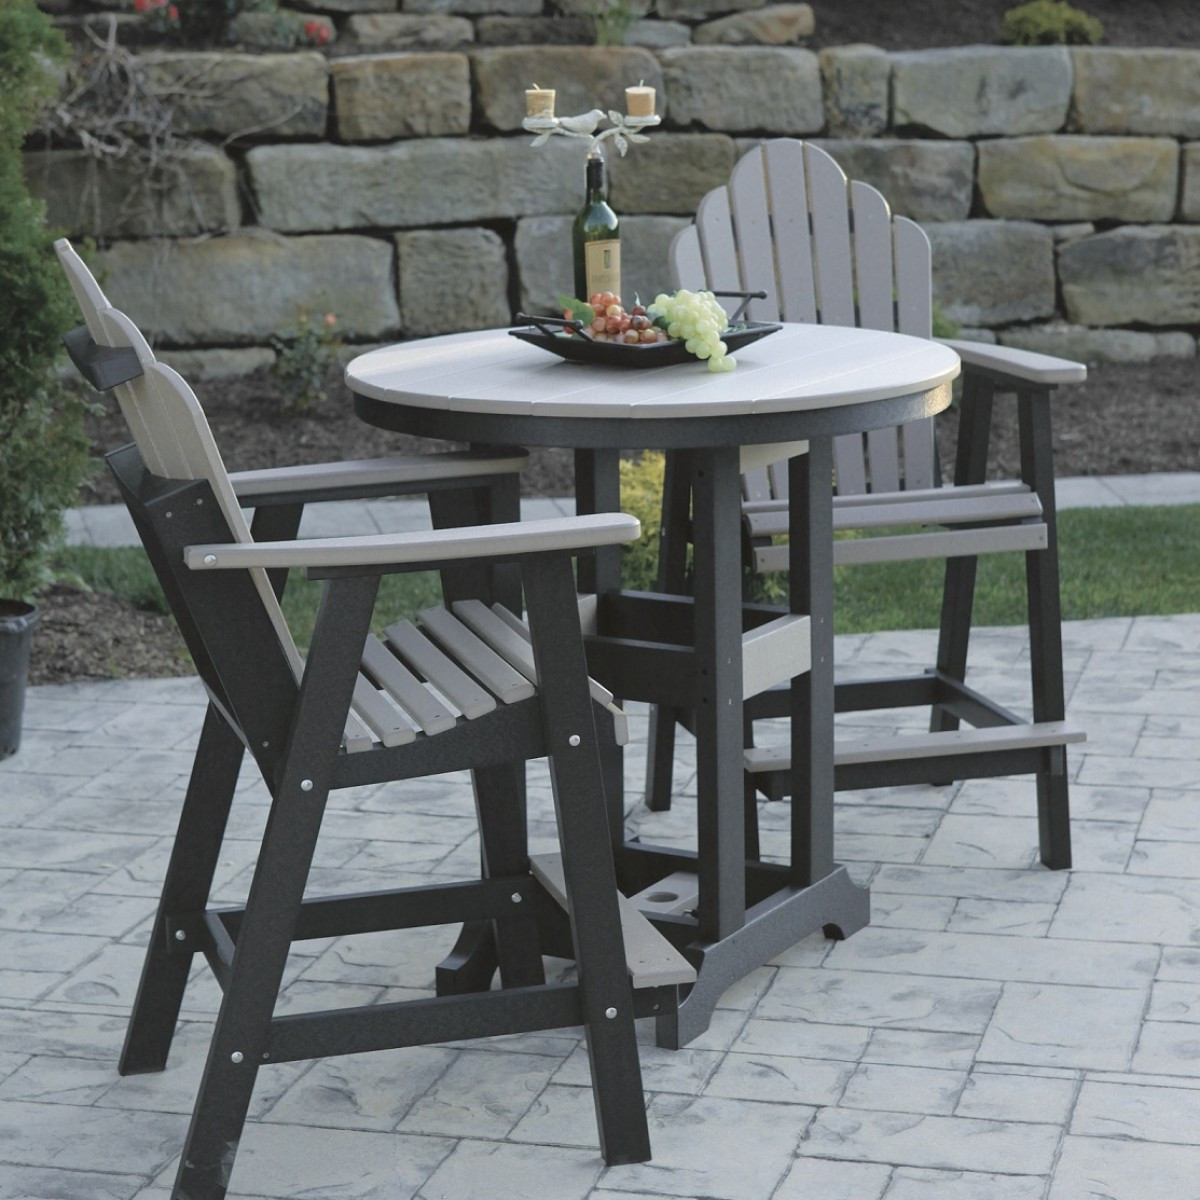 Best ideas about Bar Height Patio Furniture . Save or Pin Furniture Traditional Bar Height Patio Set For Stylish Now.